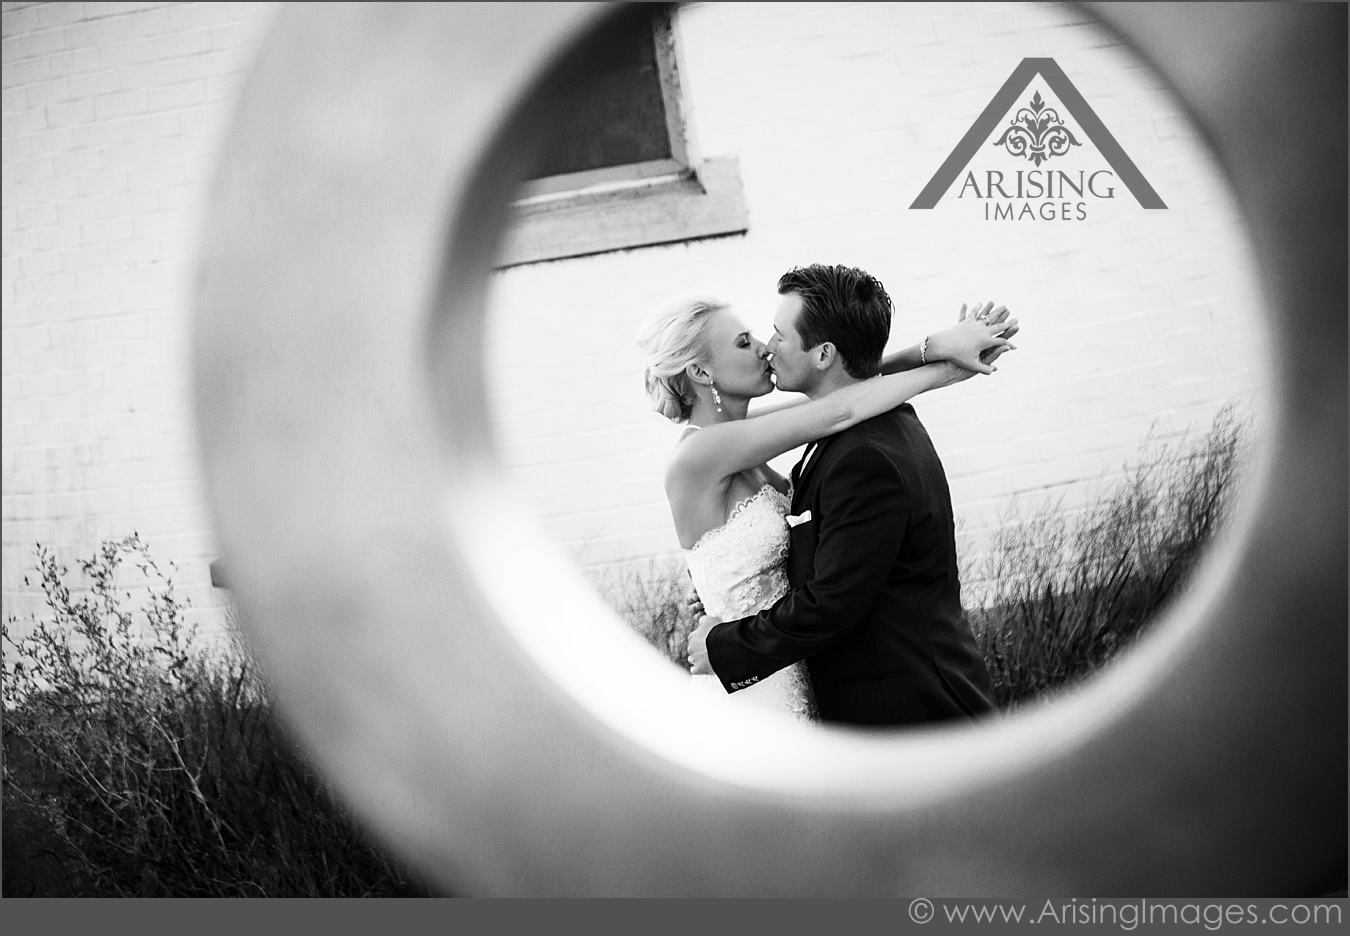 Gorgeous black and white wedding photography